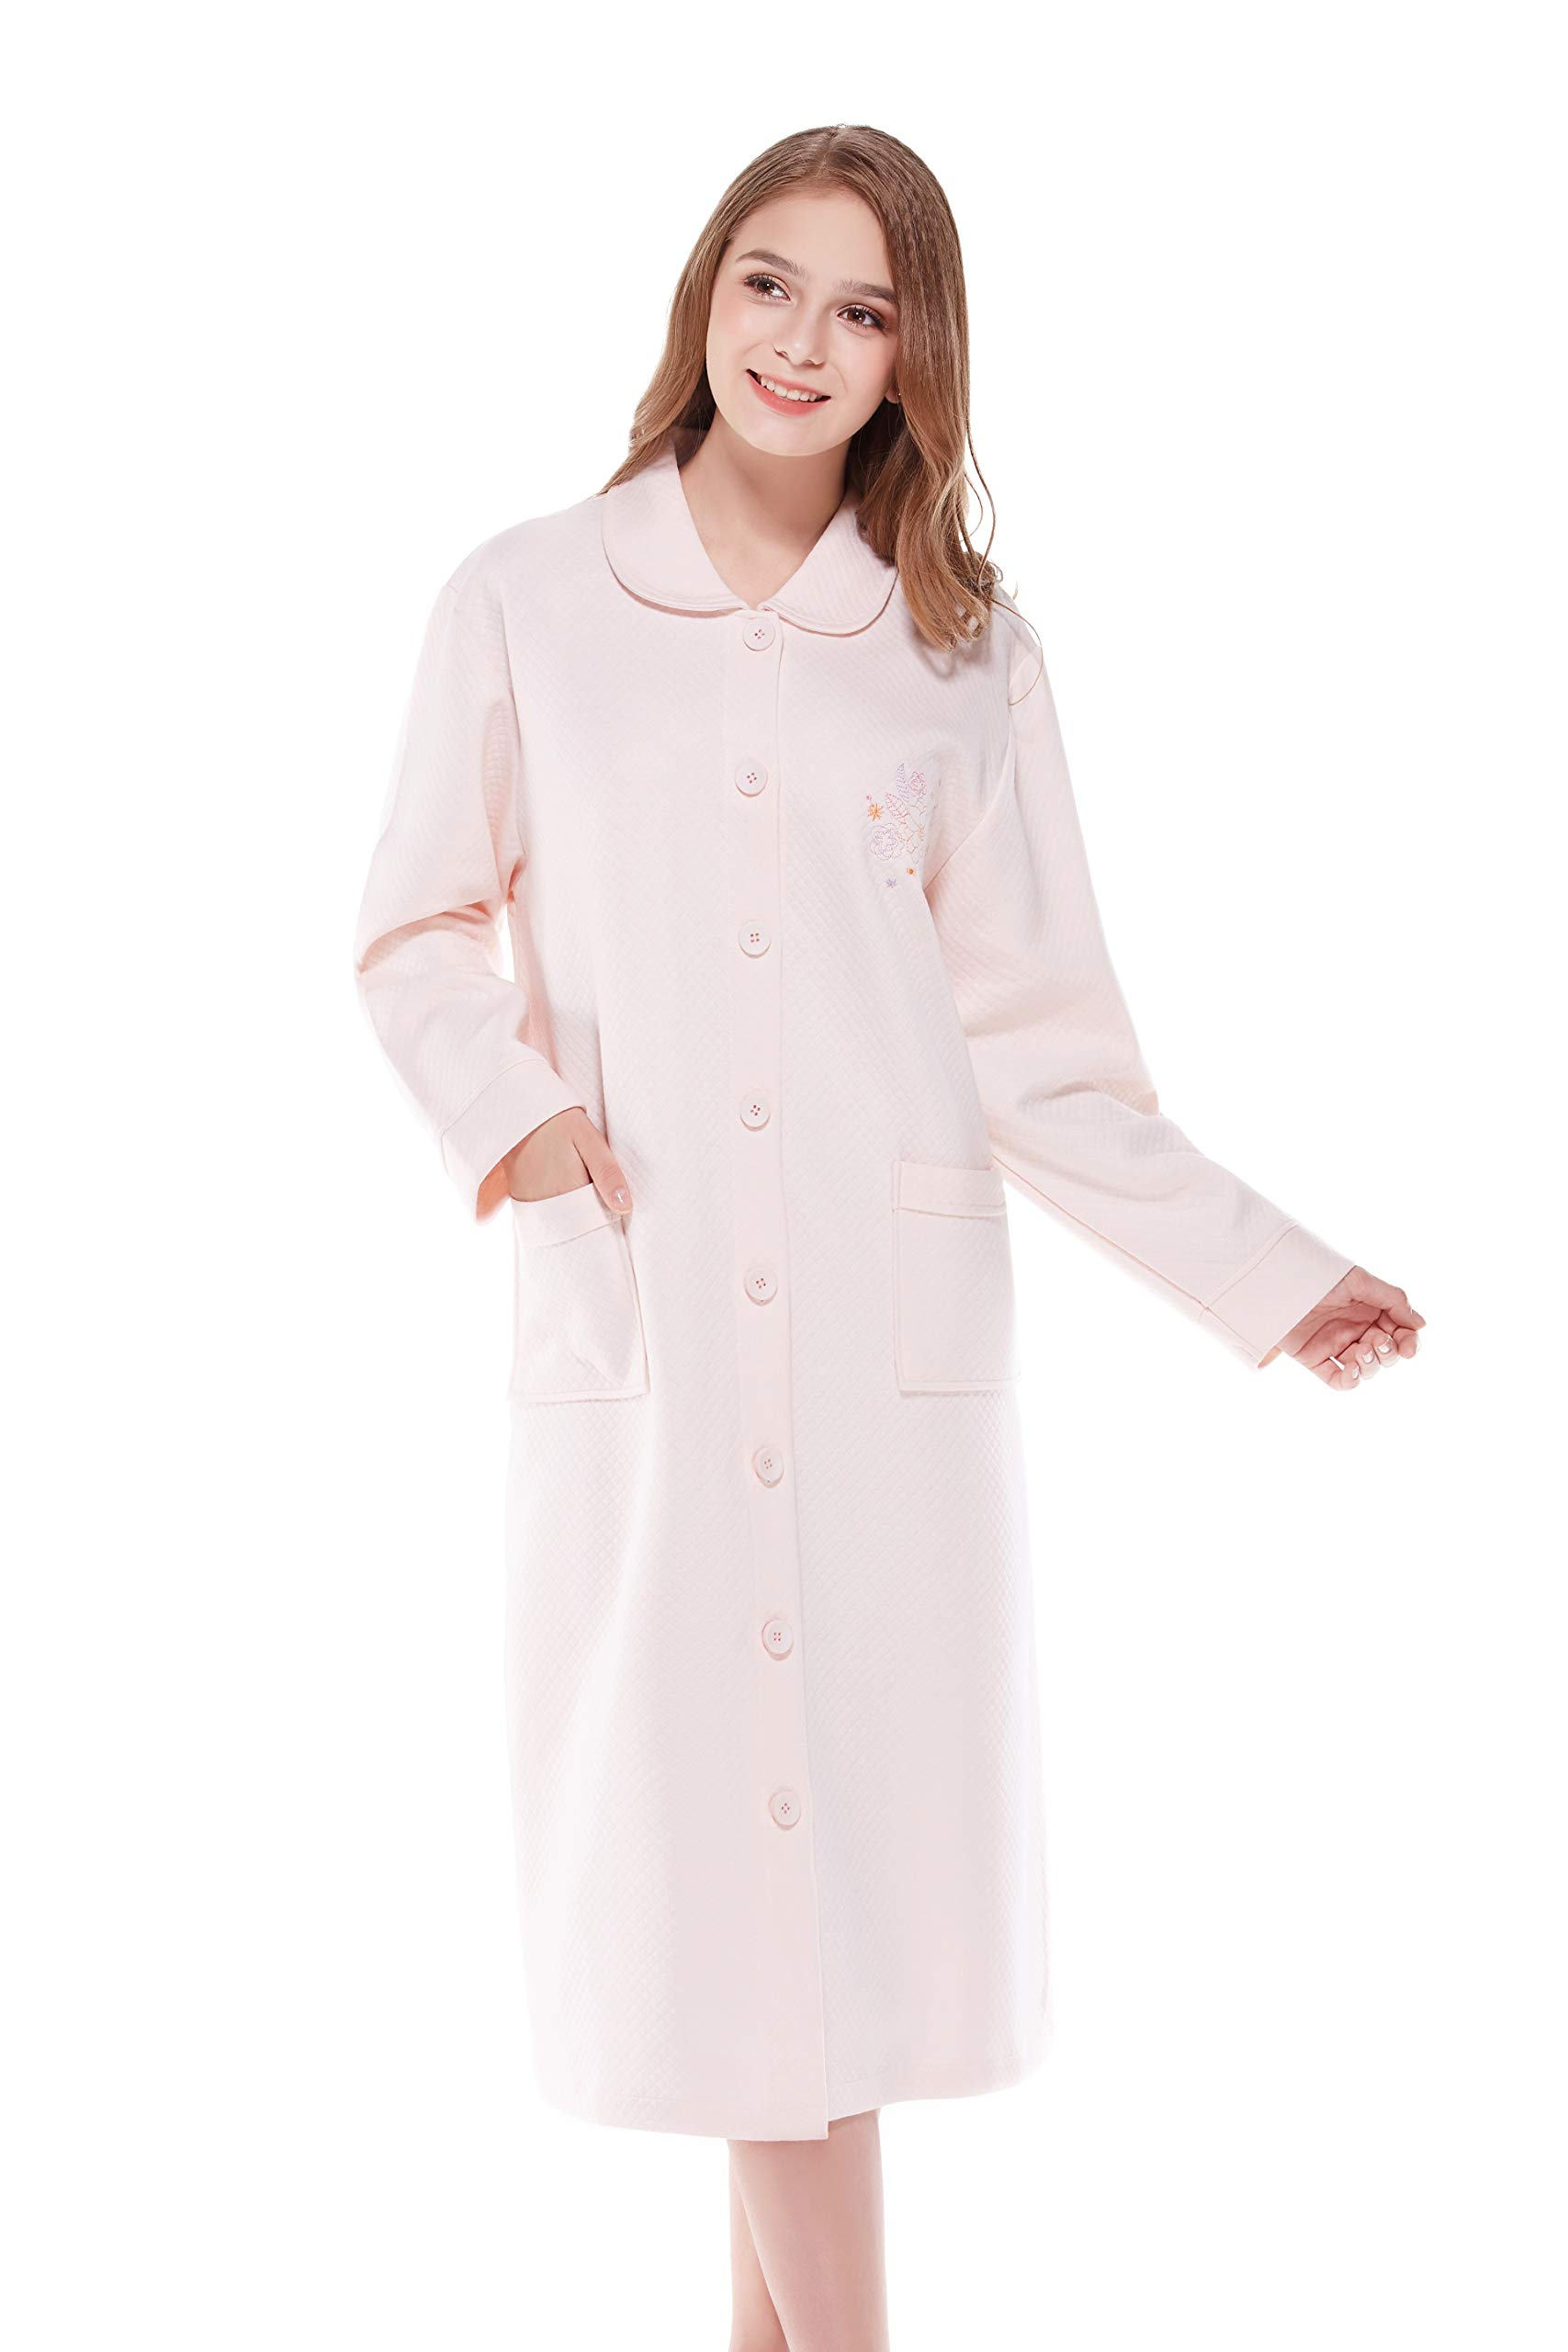 Long Women's Robes with Pocket, Soft Cozy Bathrobe for Women, Warm Comfortable Loungewear